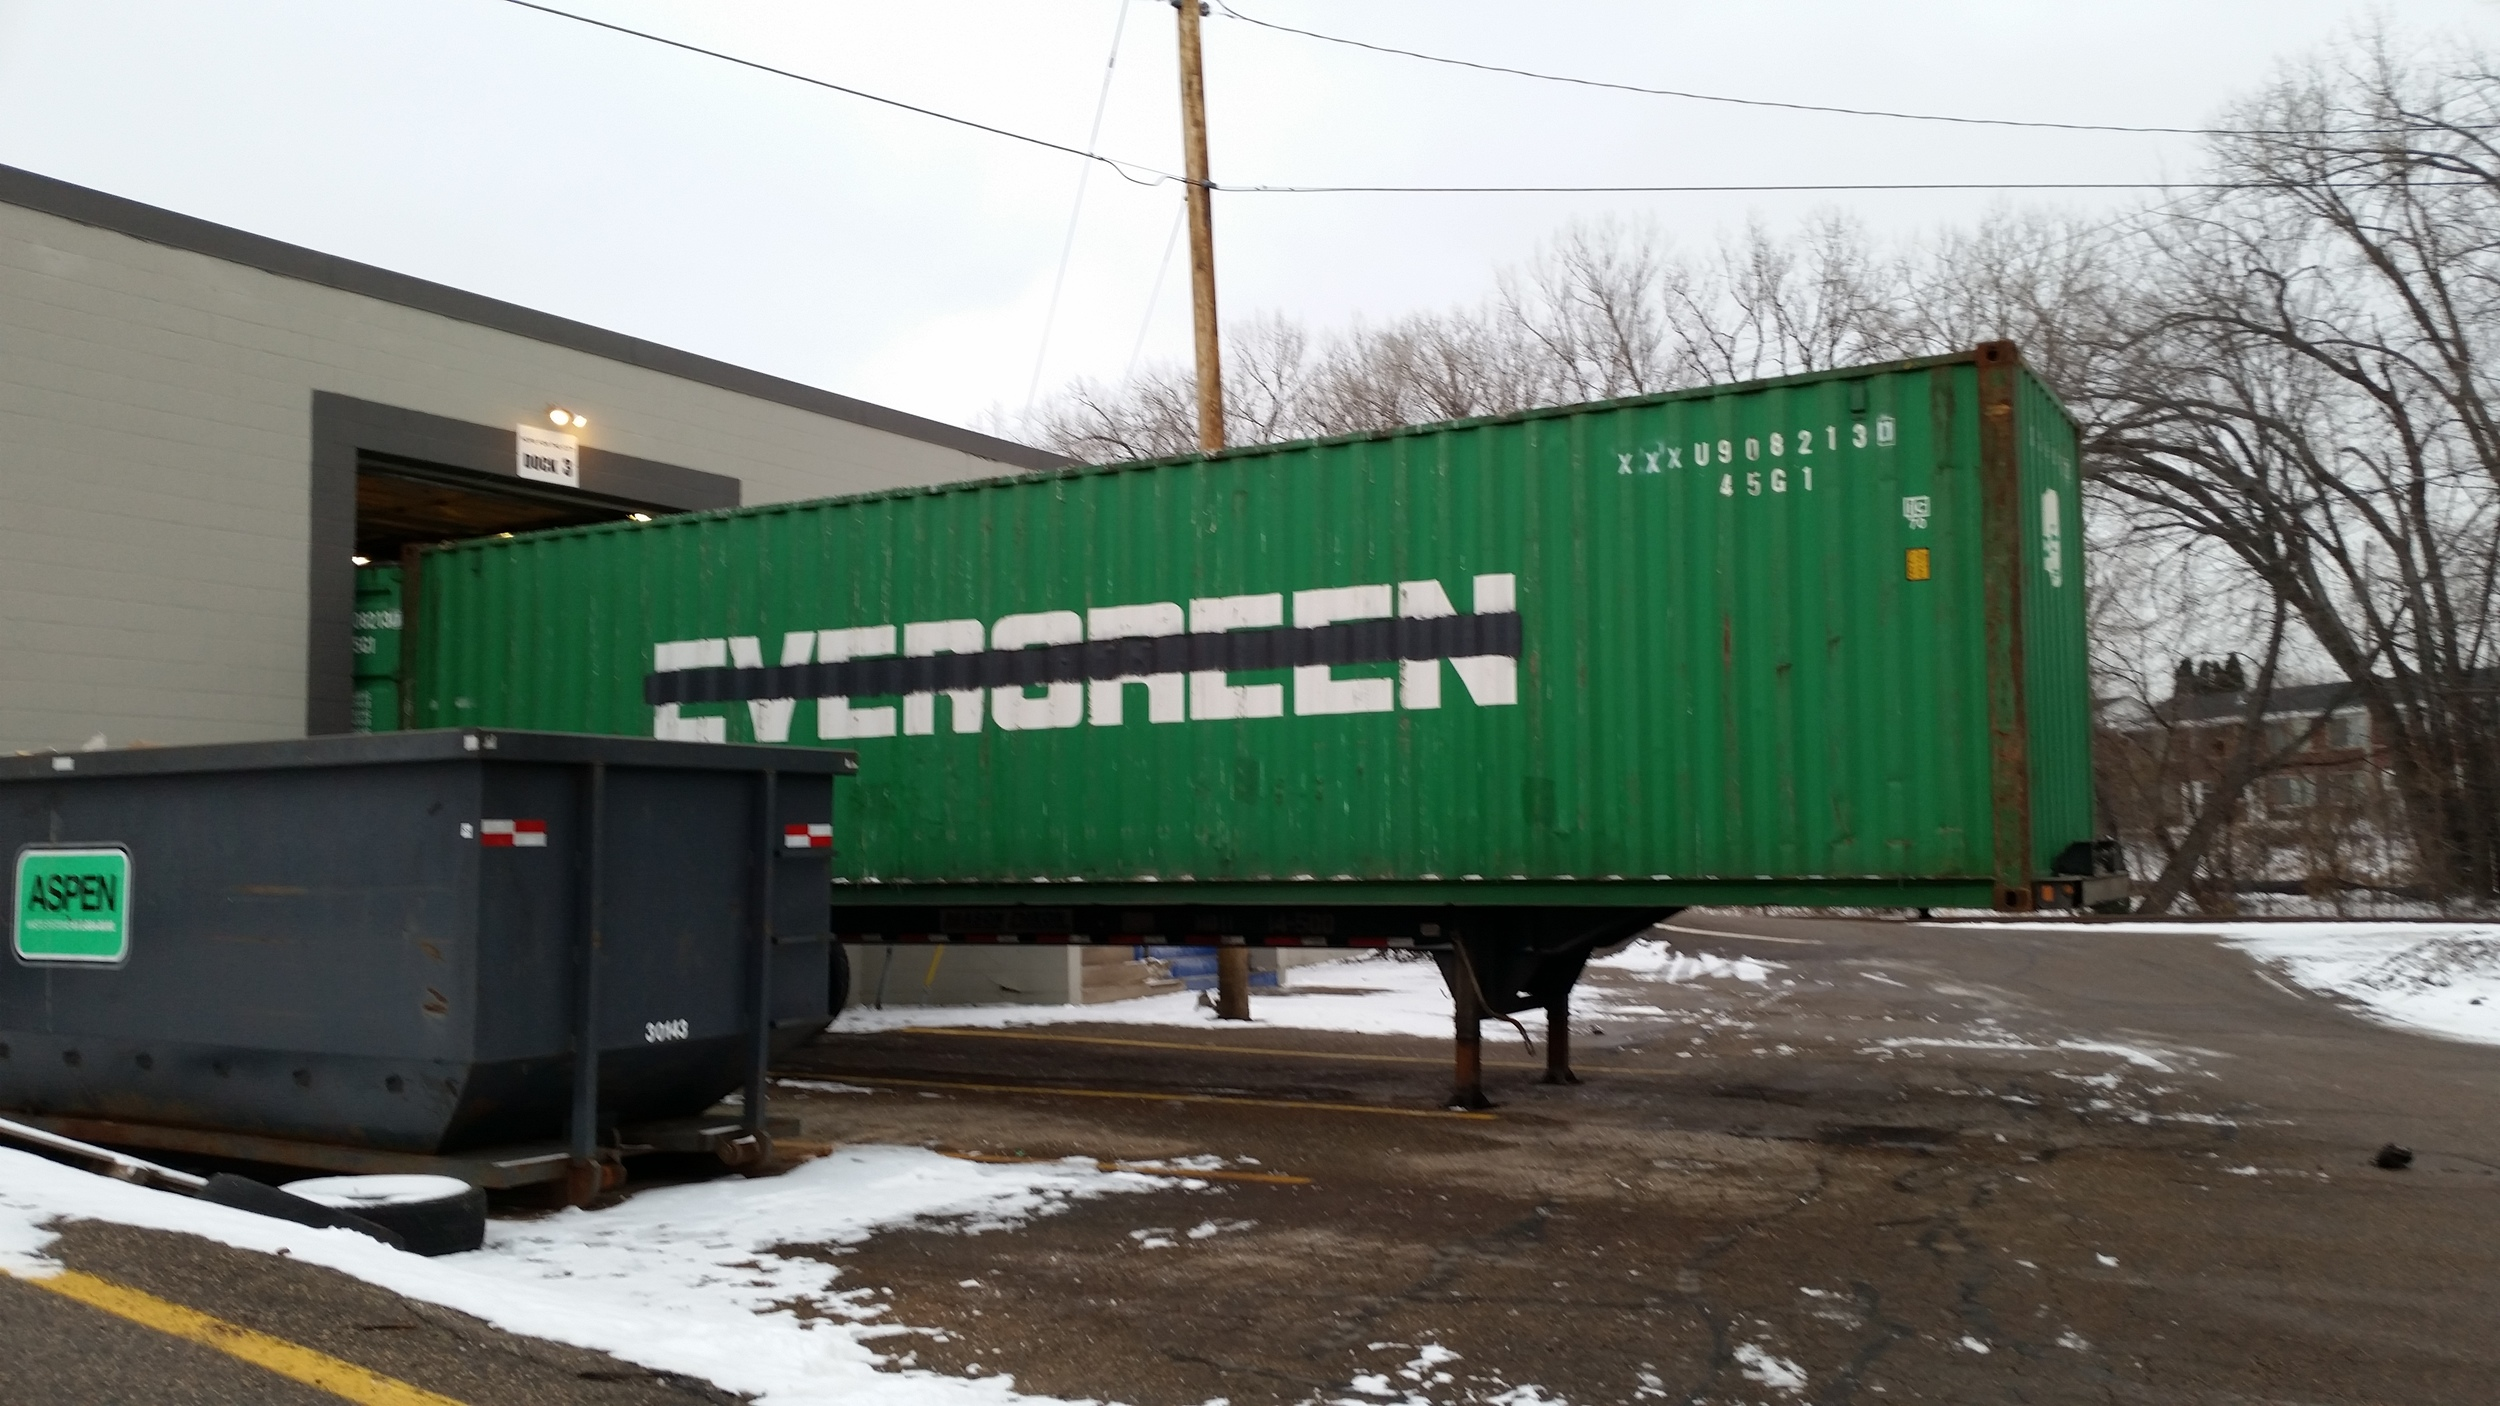 Shipper-owned container at a dock to be loaded